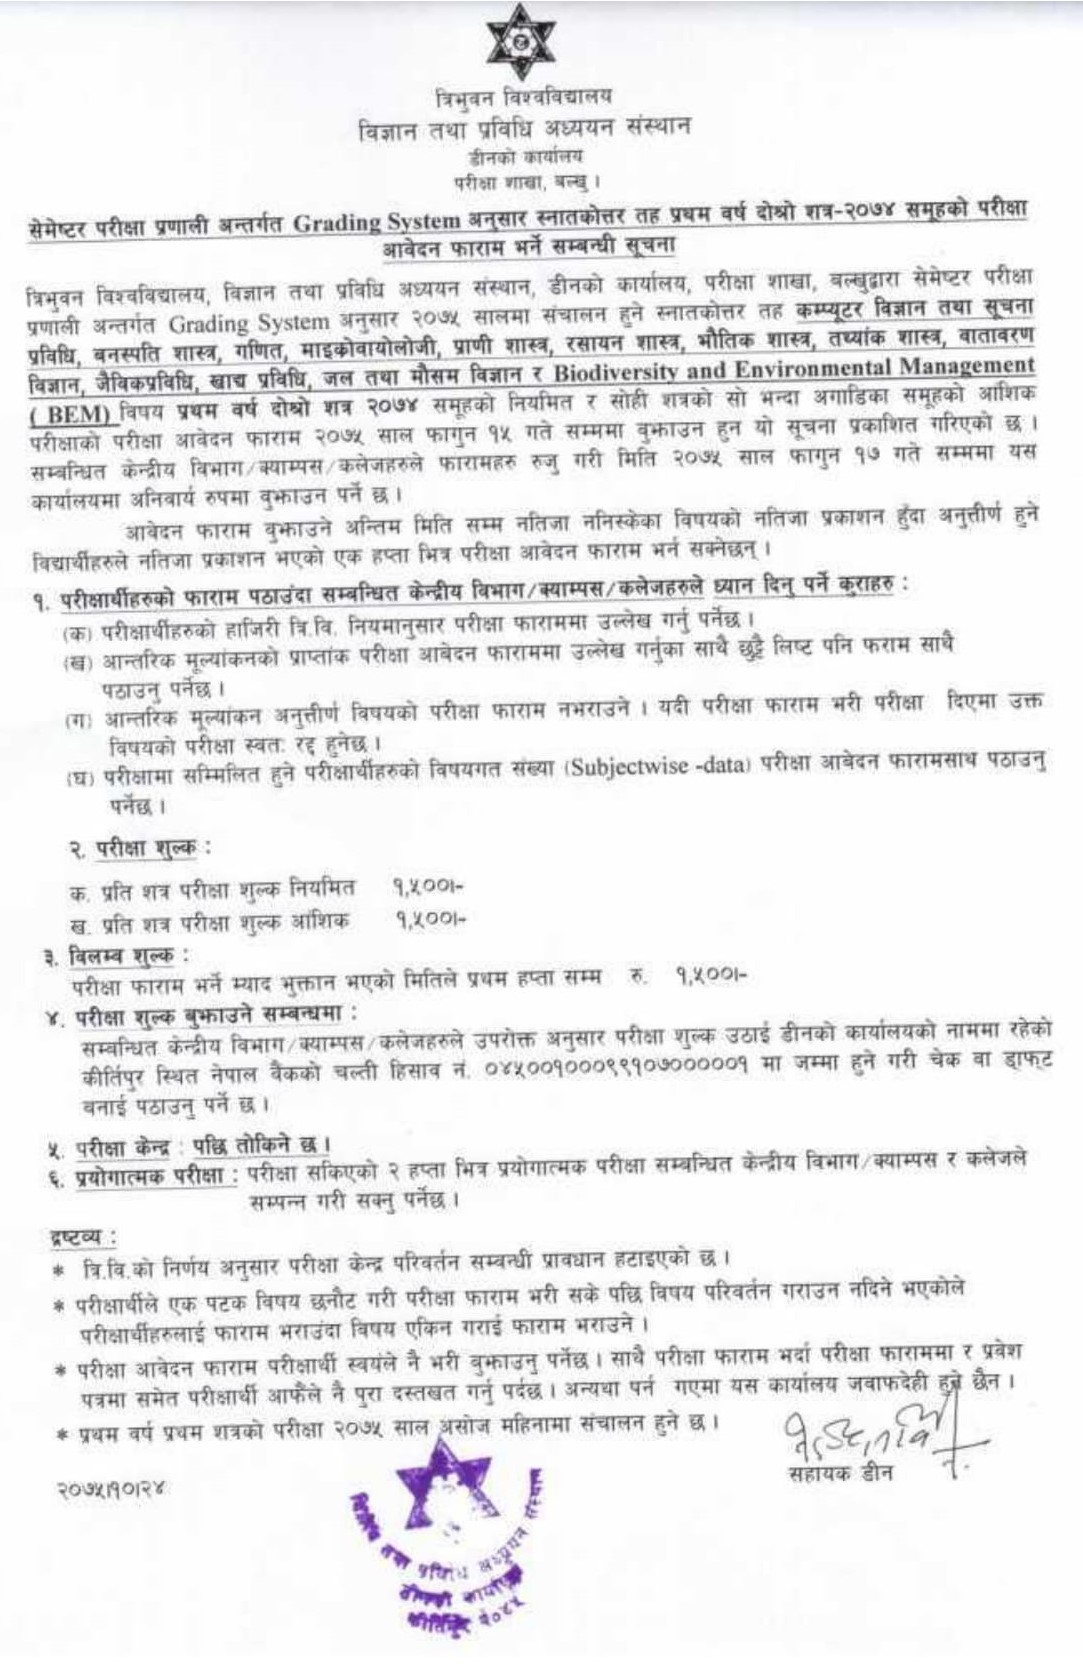 Tribhuvan University MSc, Tribhuvan University Master of Science, Tribhuvan University Form Fill Up Notice, Tribhuvan University MSc Second Semester, Master of Science, MSc, Master of Science Form Fill Up Notice, MSc Form Fill Up Notice, Tu Form Fill Up Notice, Form Fill Up Notice,